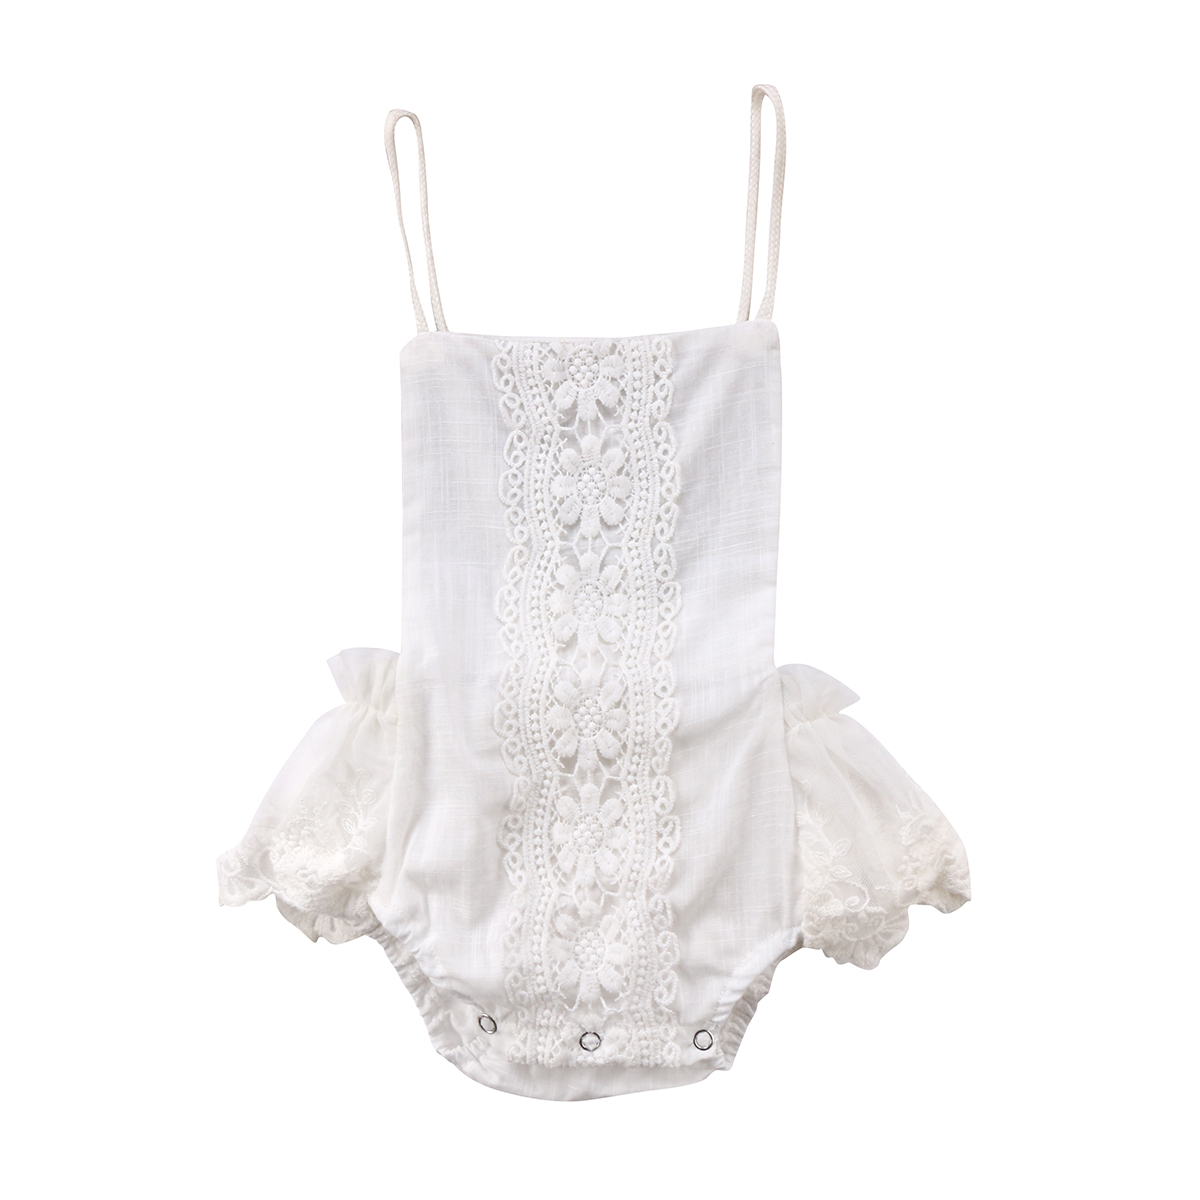 2018 Baby Summer   Rompers   Infant Baby Girl Cotton Lace   Romper   Sleeveless White Halter Jumpsuit Kids Baby Girls Clothes Outfit